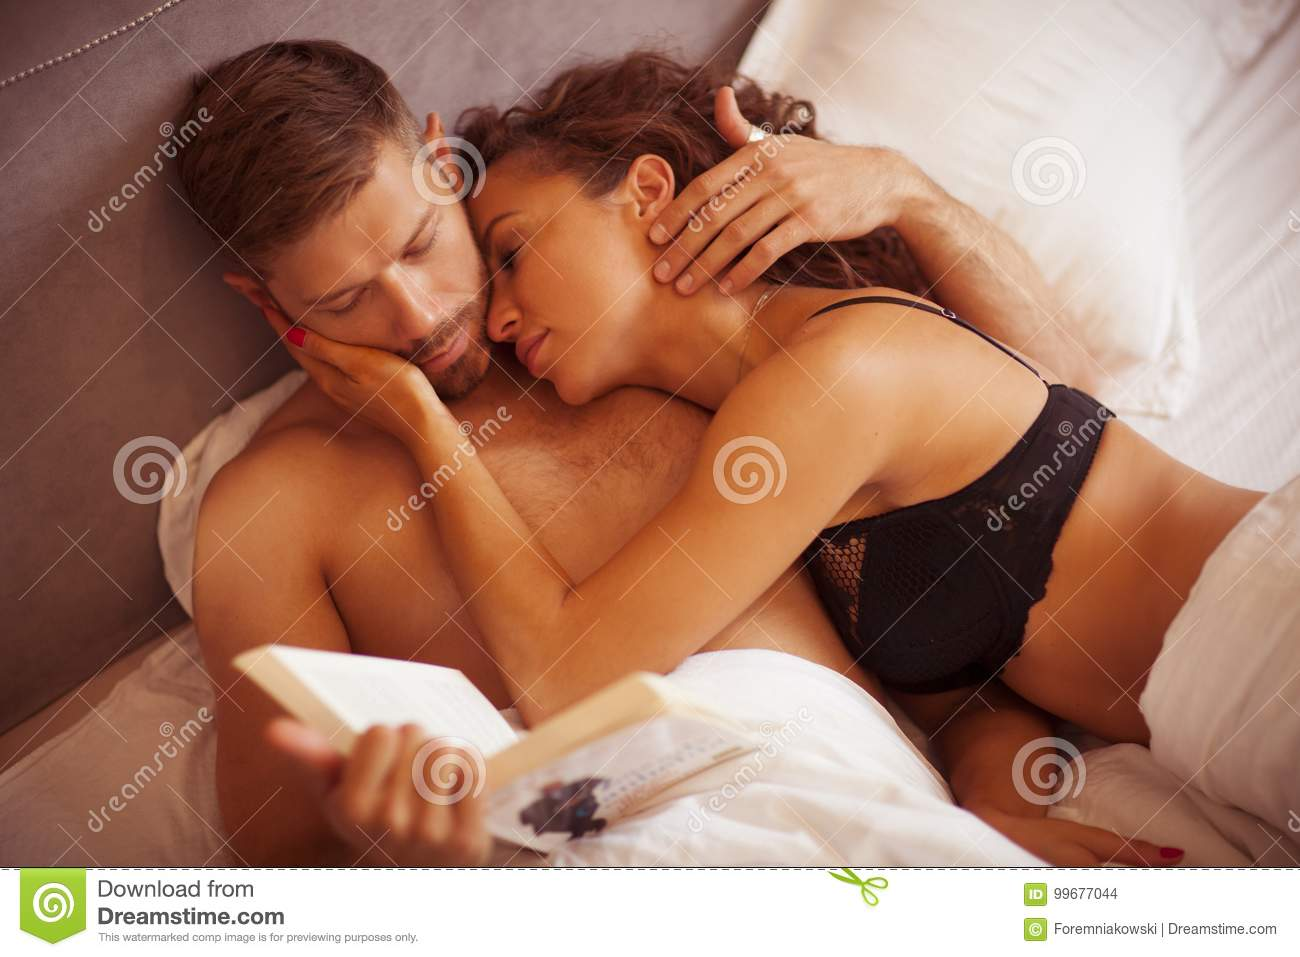 Couple sex making out